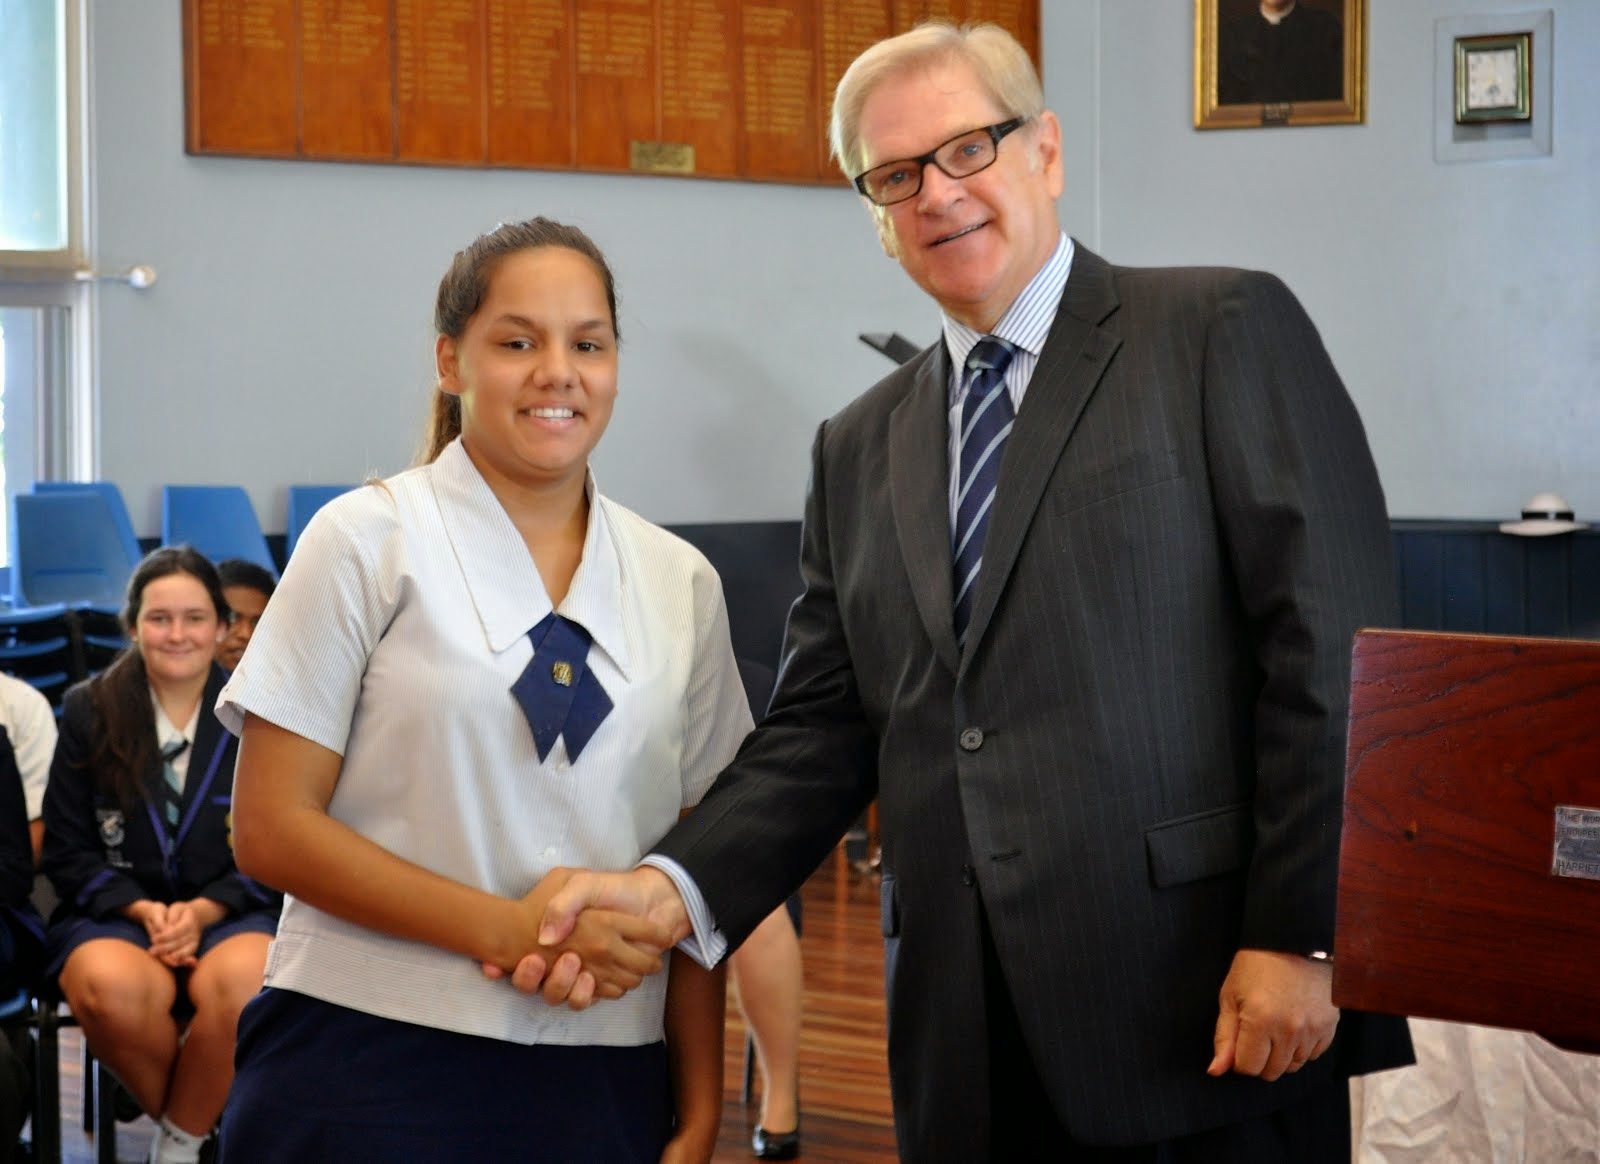 Shaleece Johnstone- Selected to attend 2015 All Stars Indigenous Youth Summit